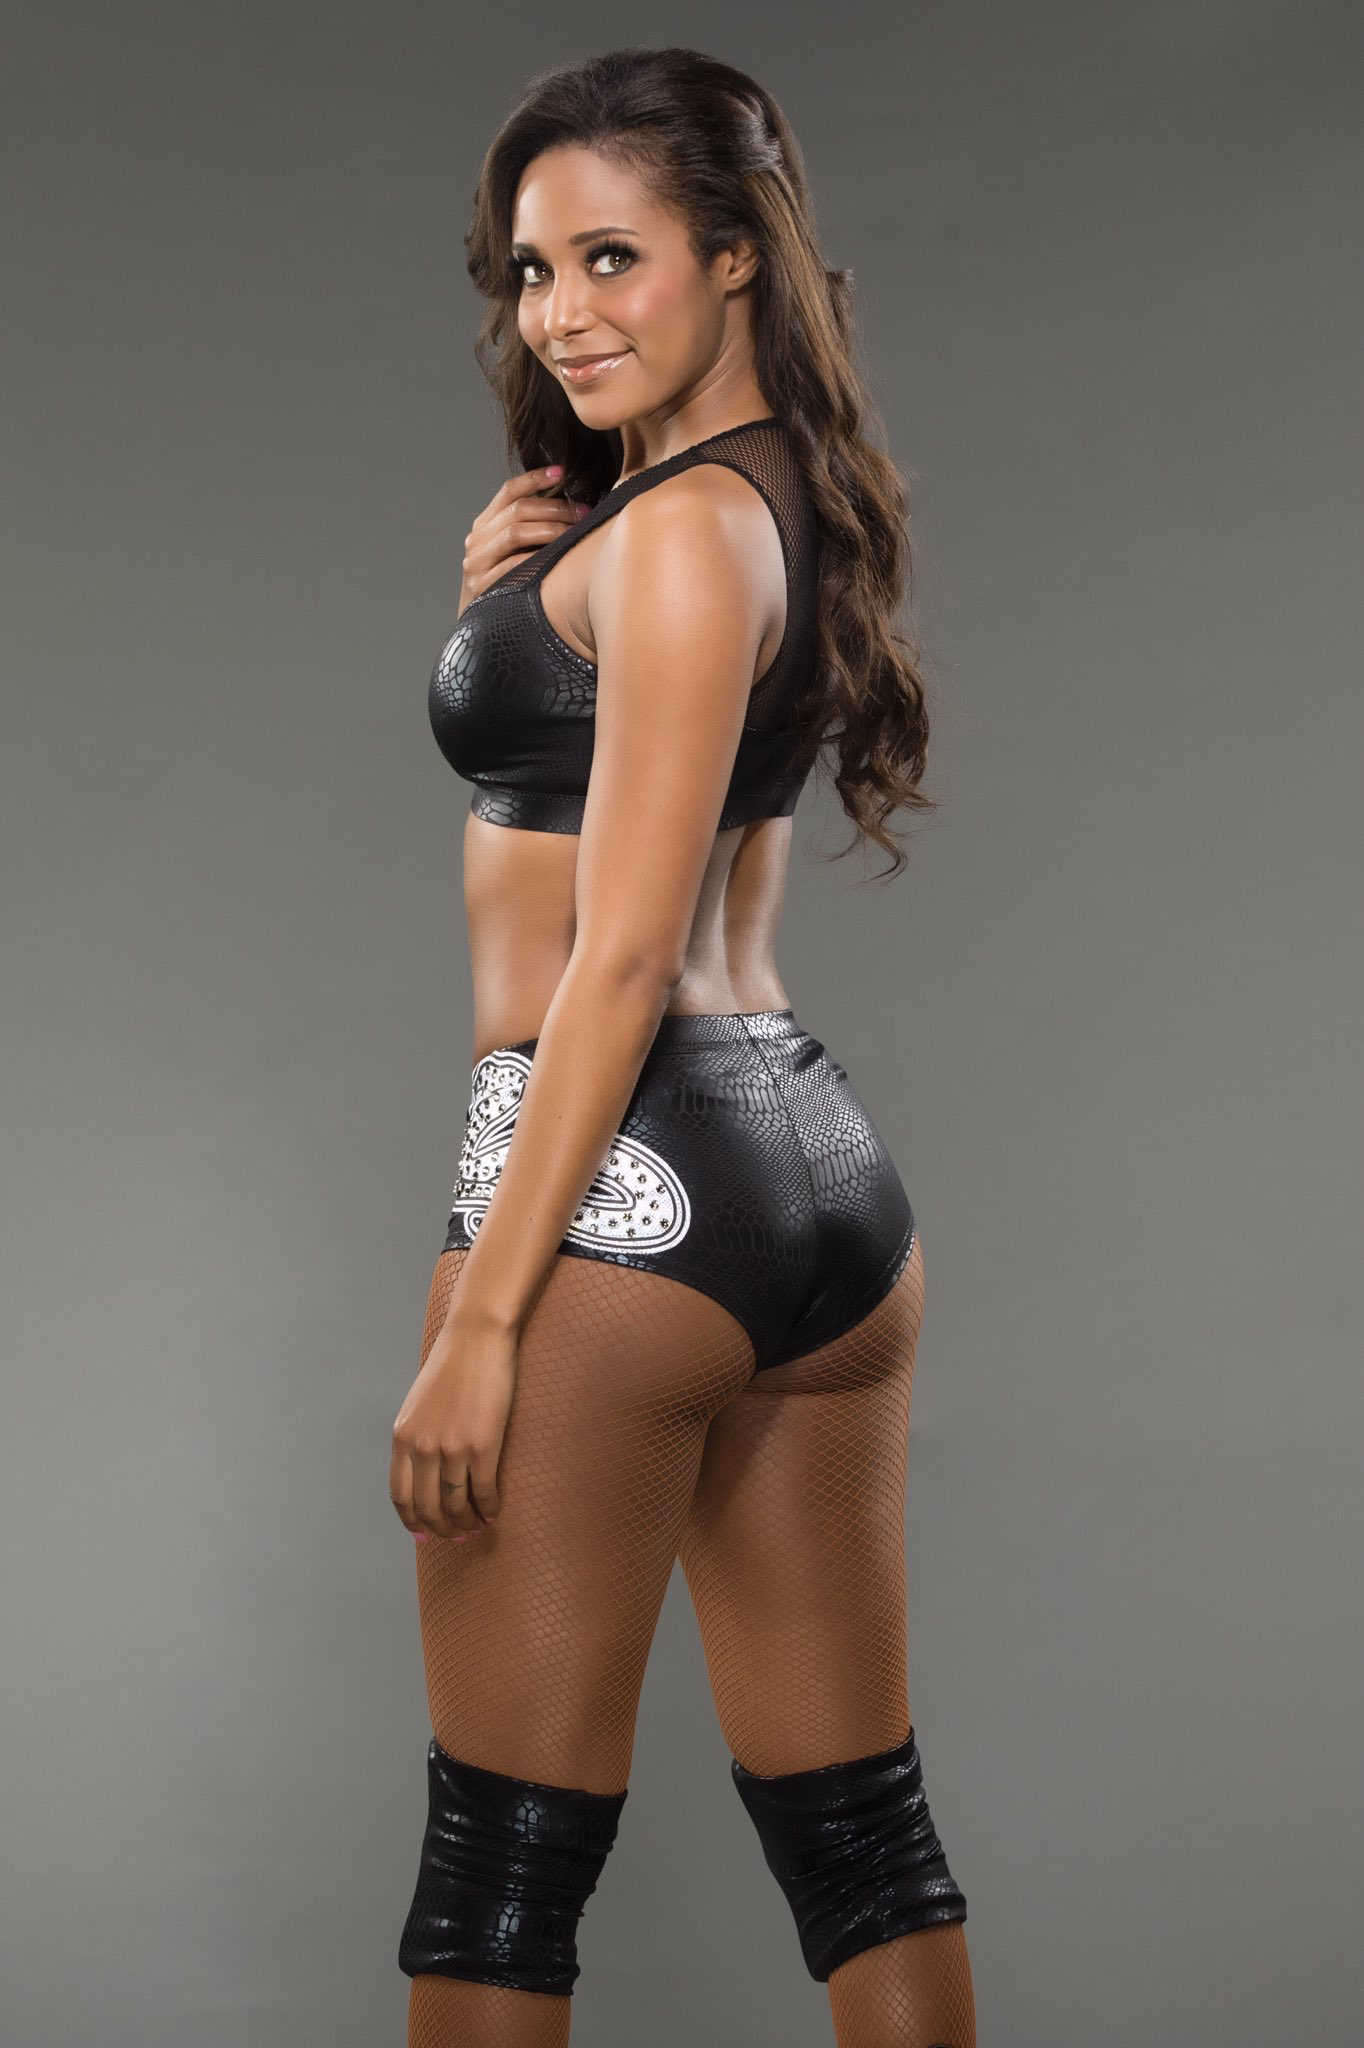 brandi rhodes/ tna knockout | women's wrestling | pinterest